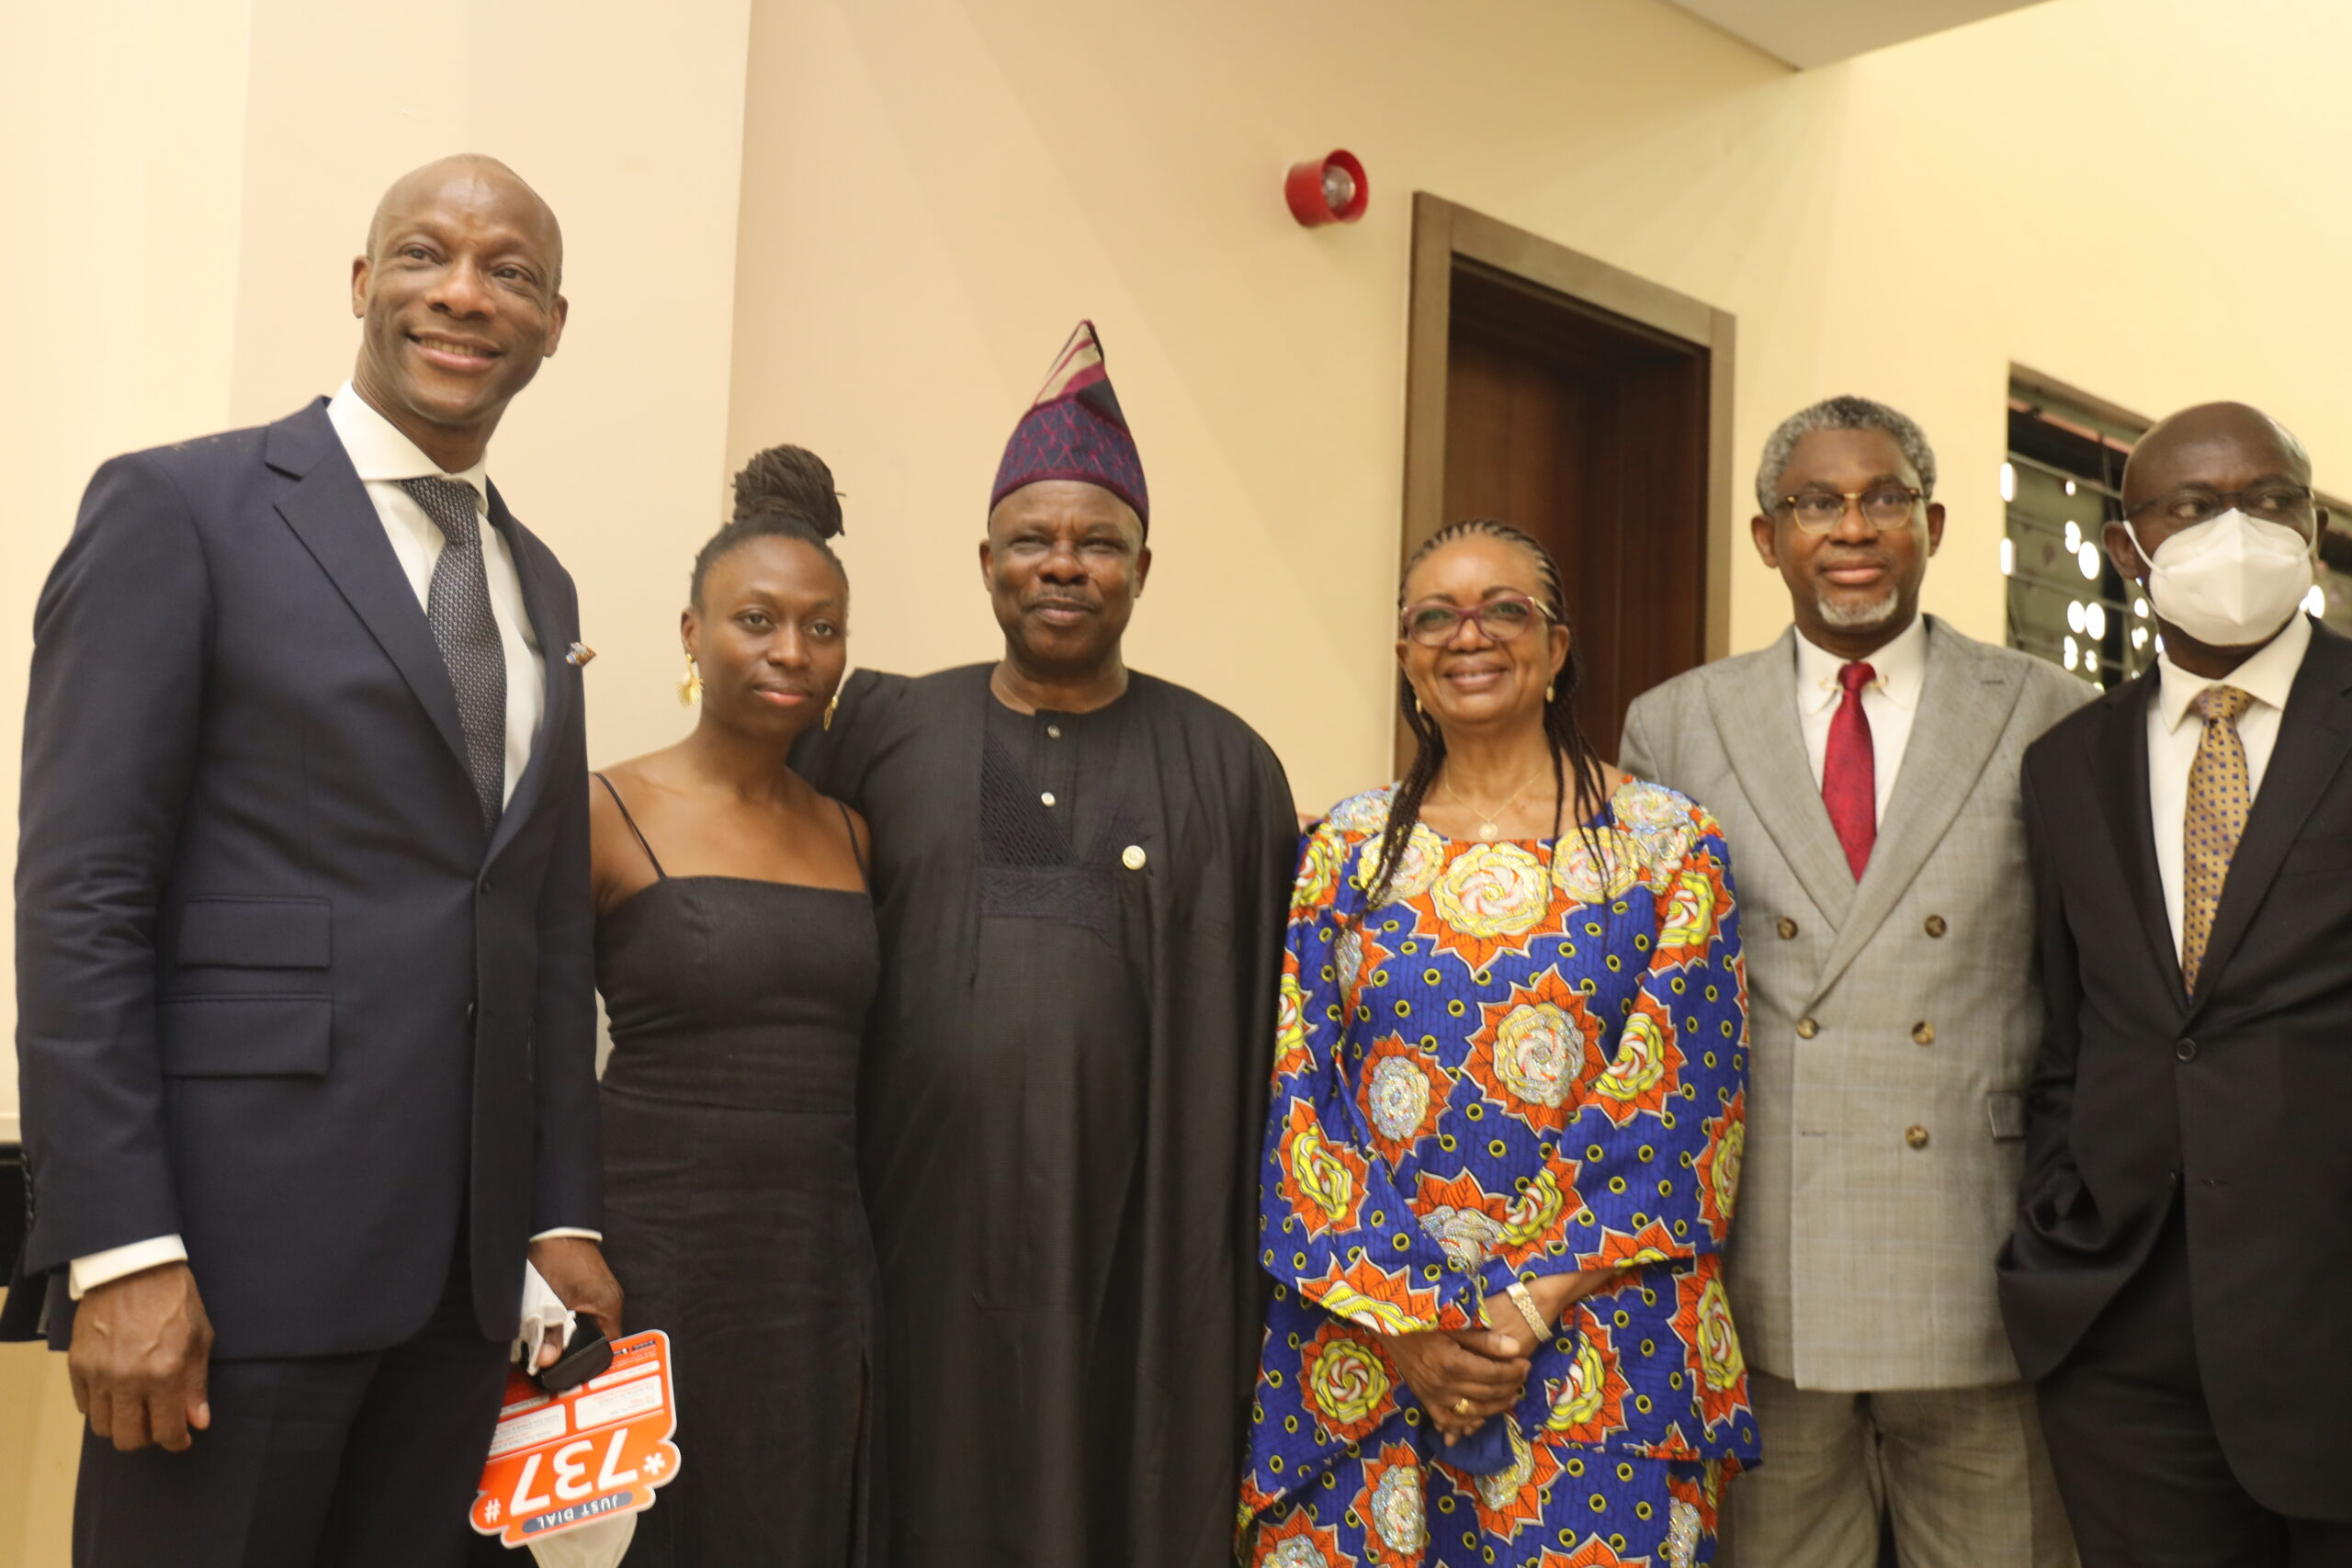 New Guaranty Trust Training Complex dedicated to memory of co-founder Tayo Aderinokun